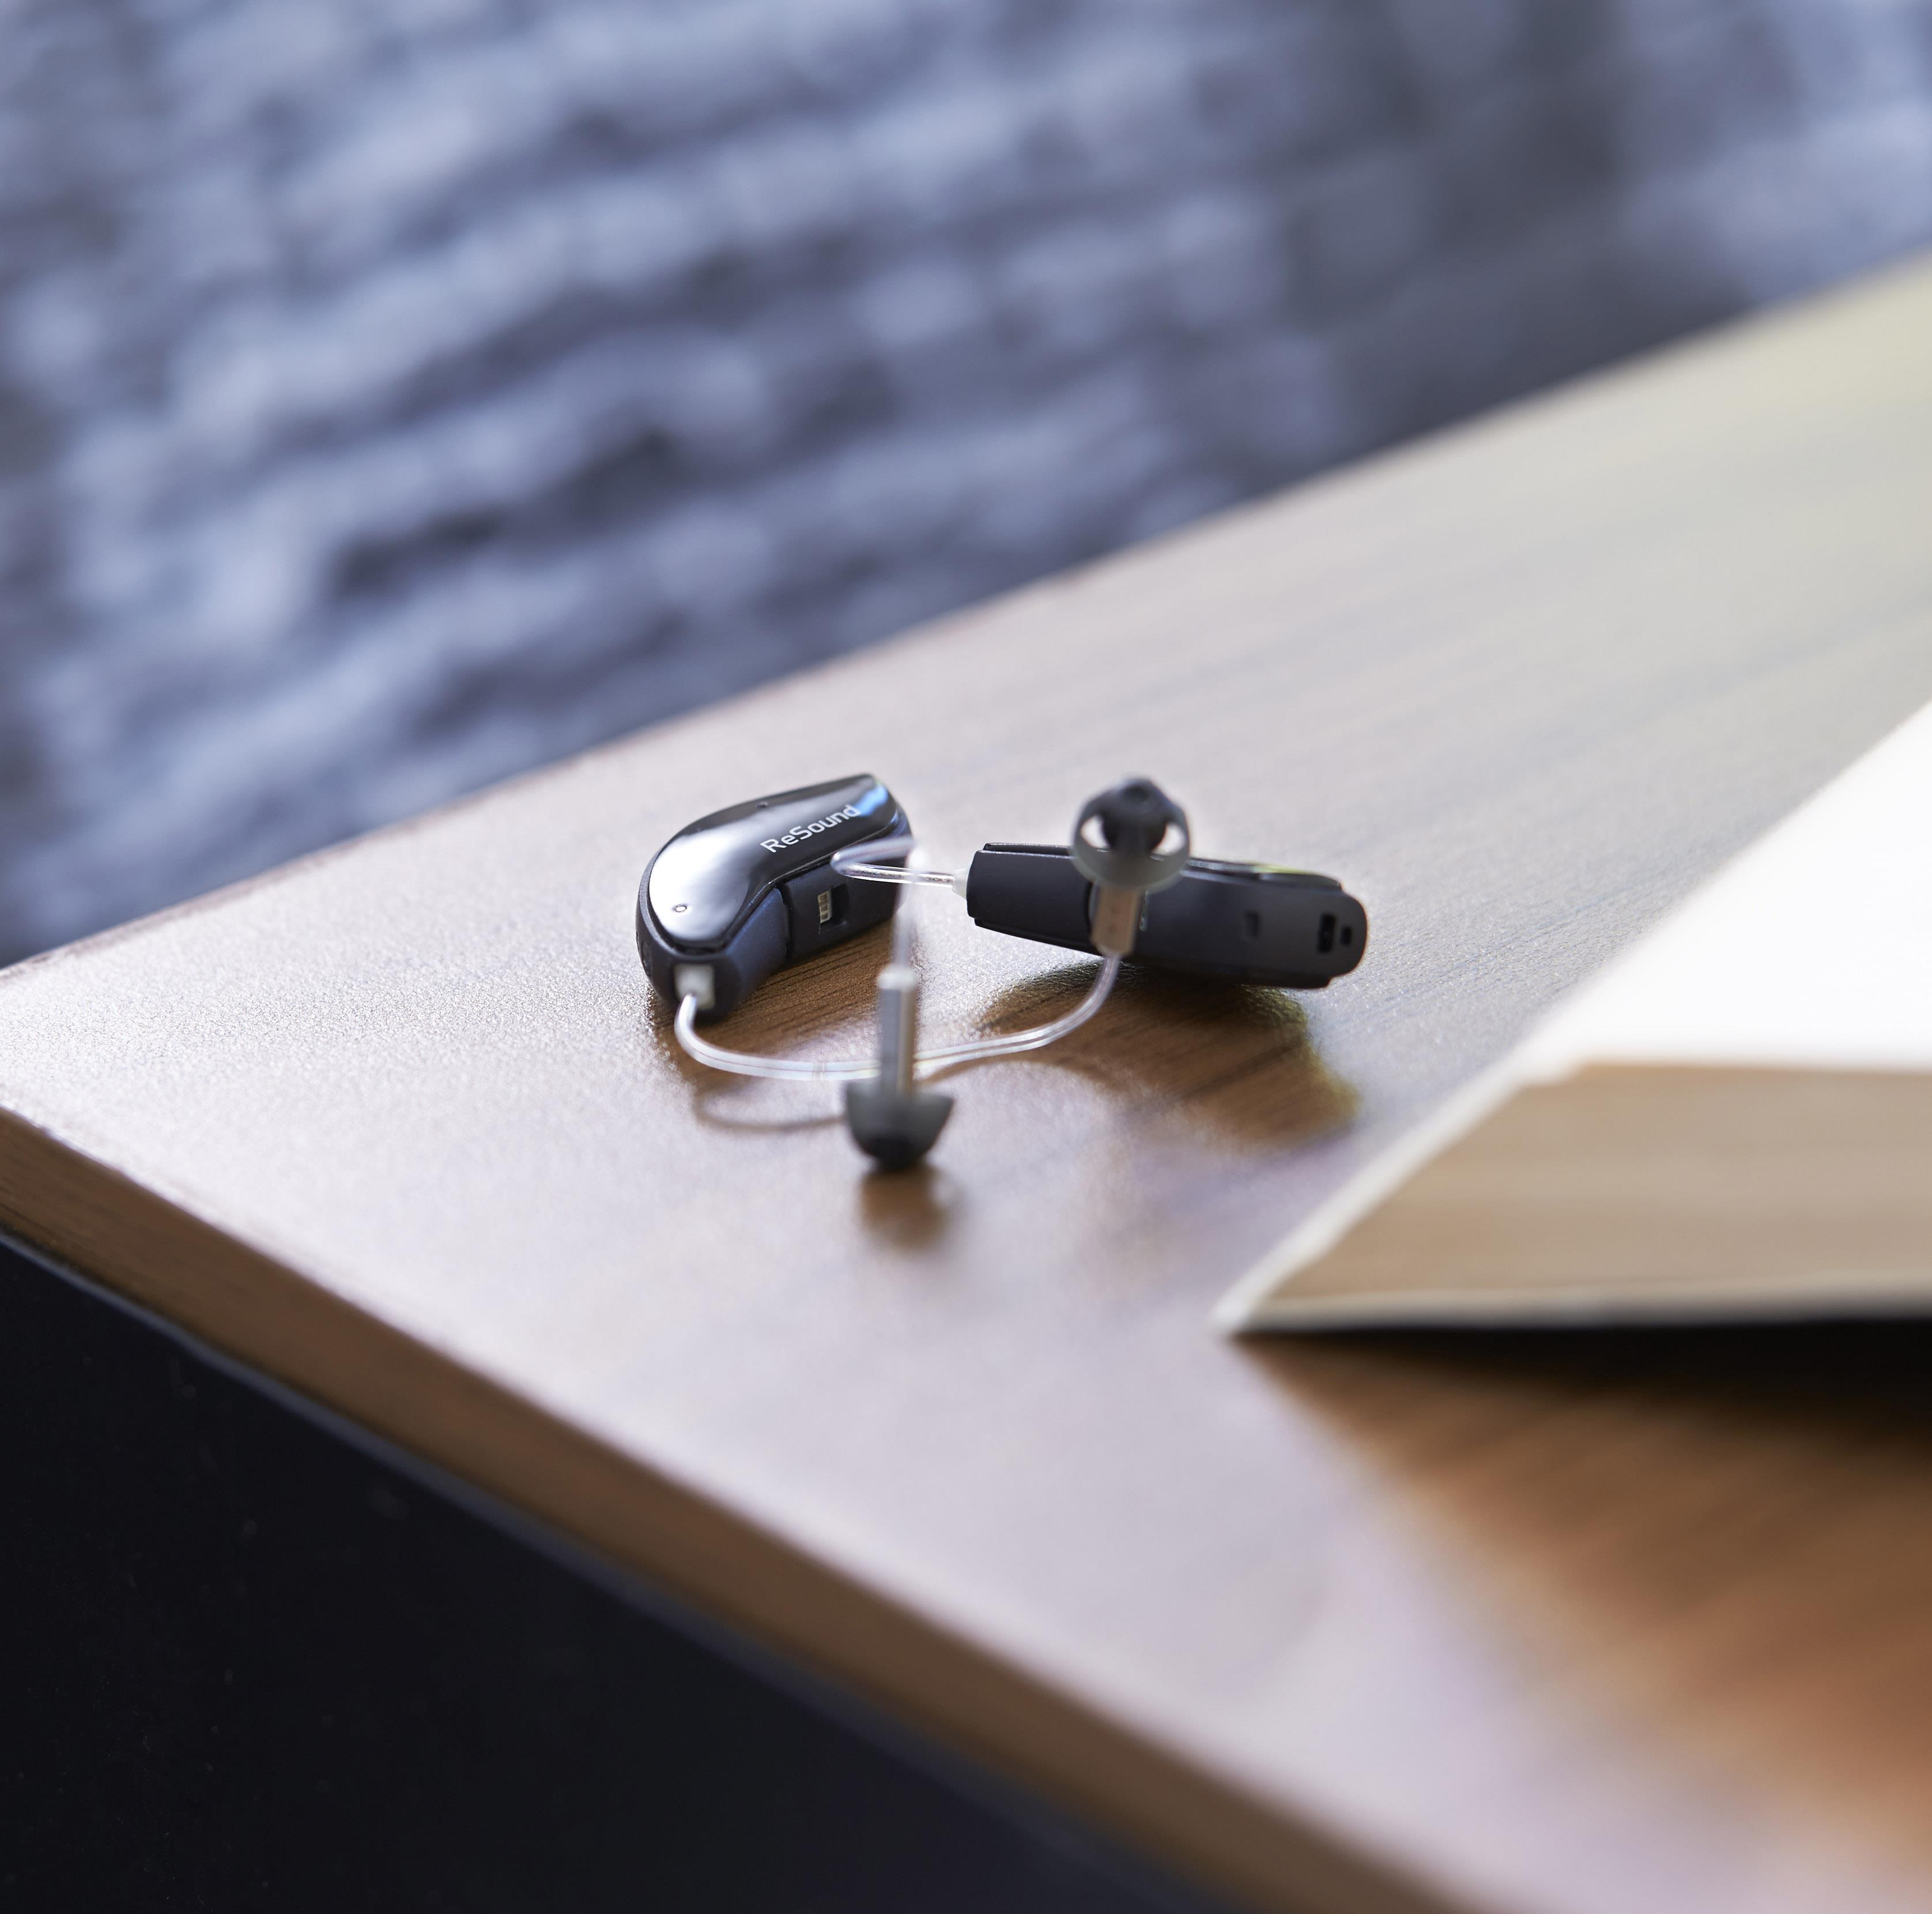 Pair of ReSound  hearing aids on a table.